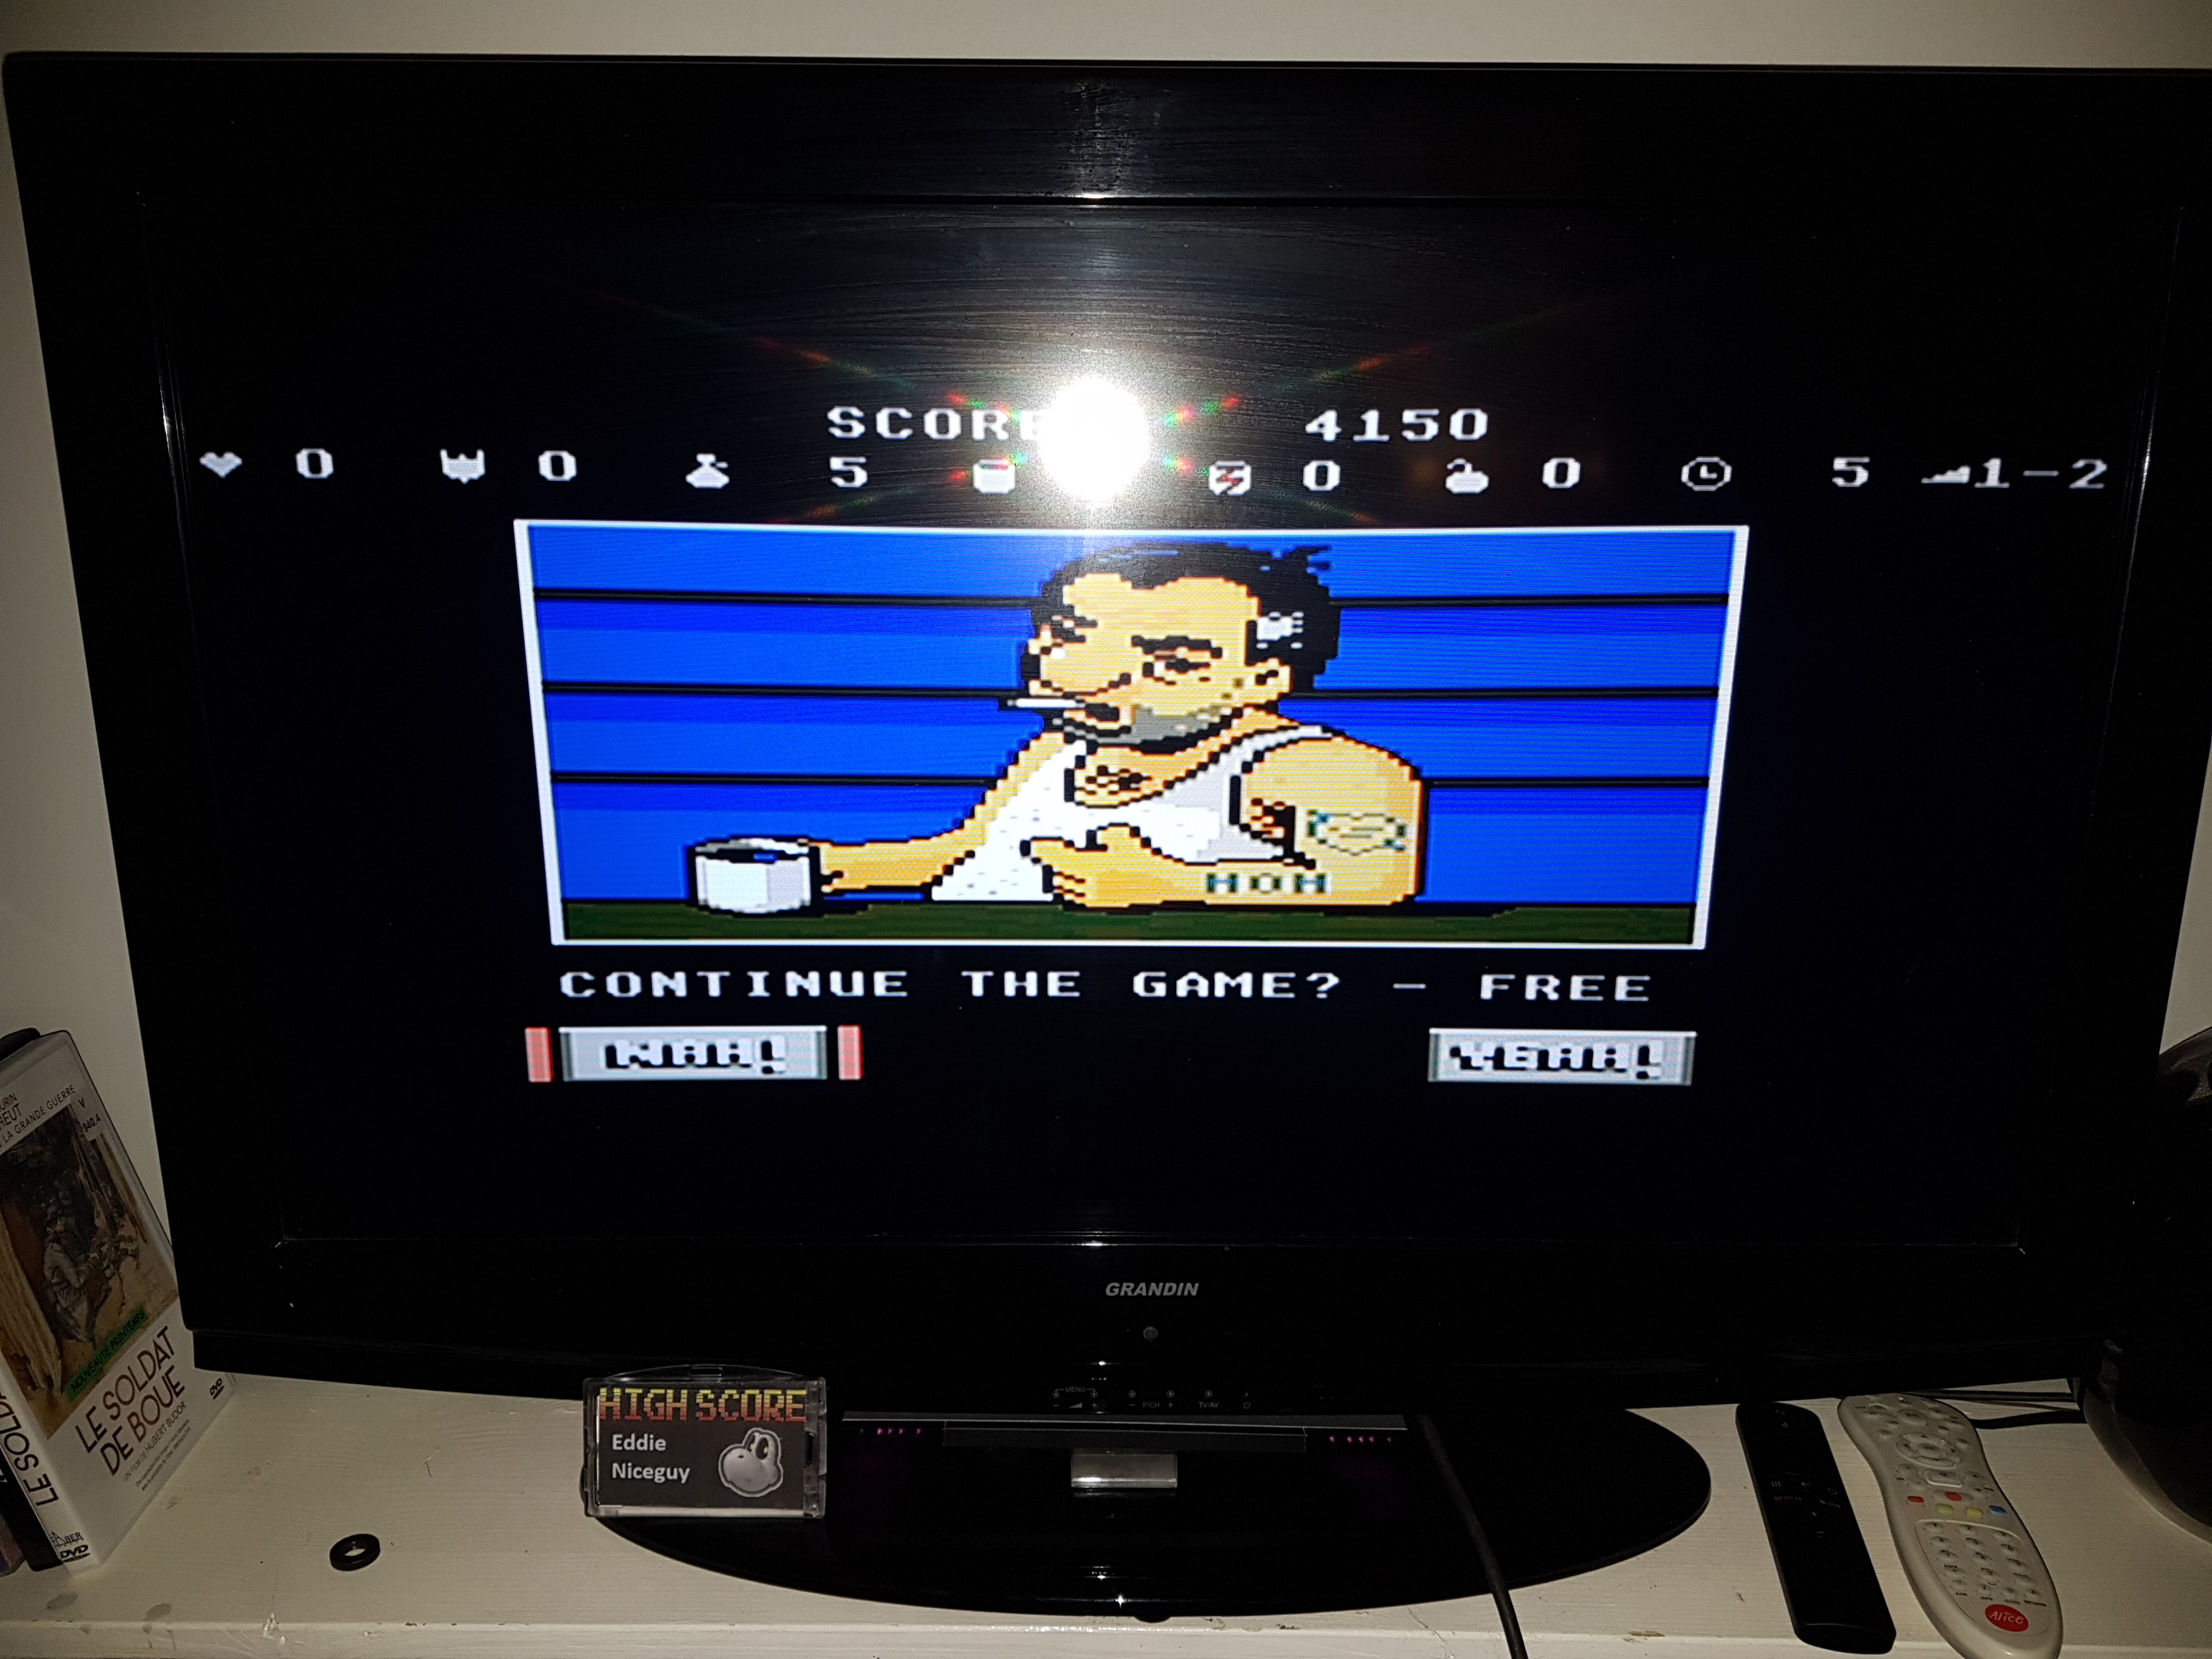 EddieNiceguy: Scrapyard Dog (Atari 7800 Emulated) 4,150 points on 2019-04-05 17:18:53